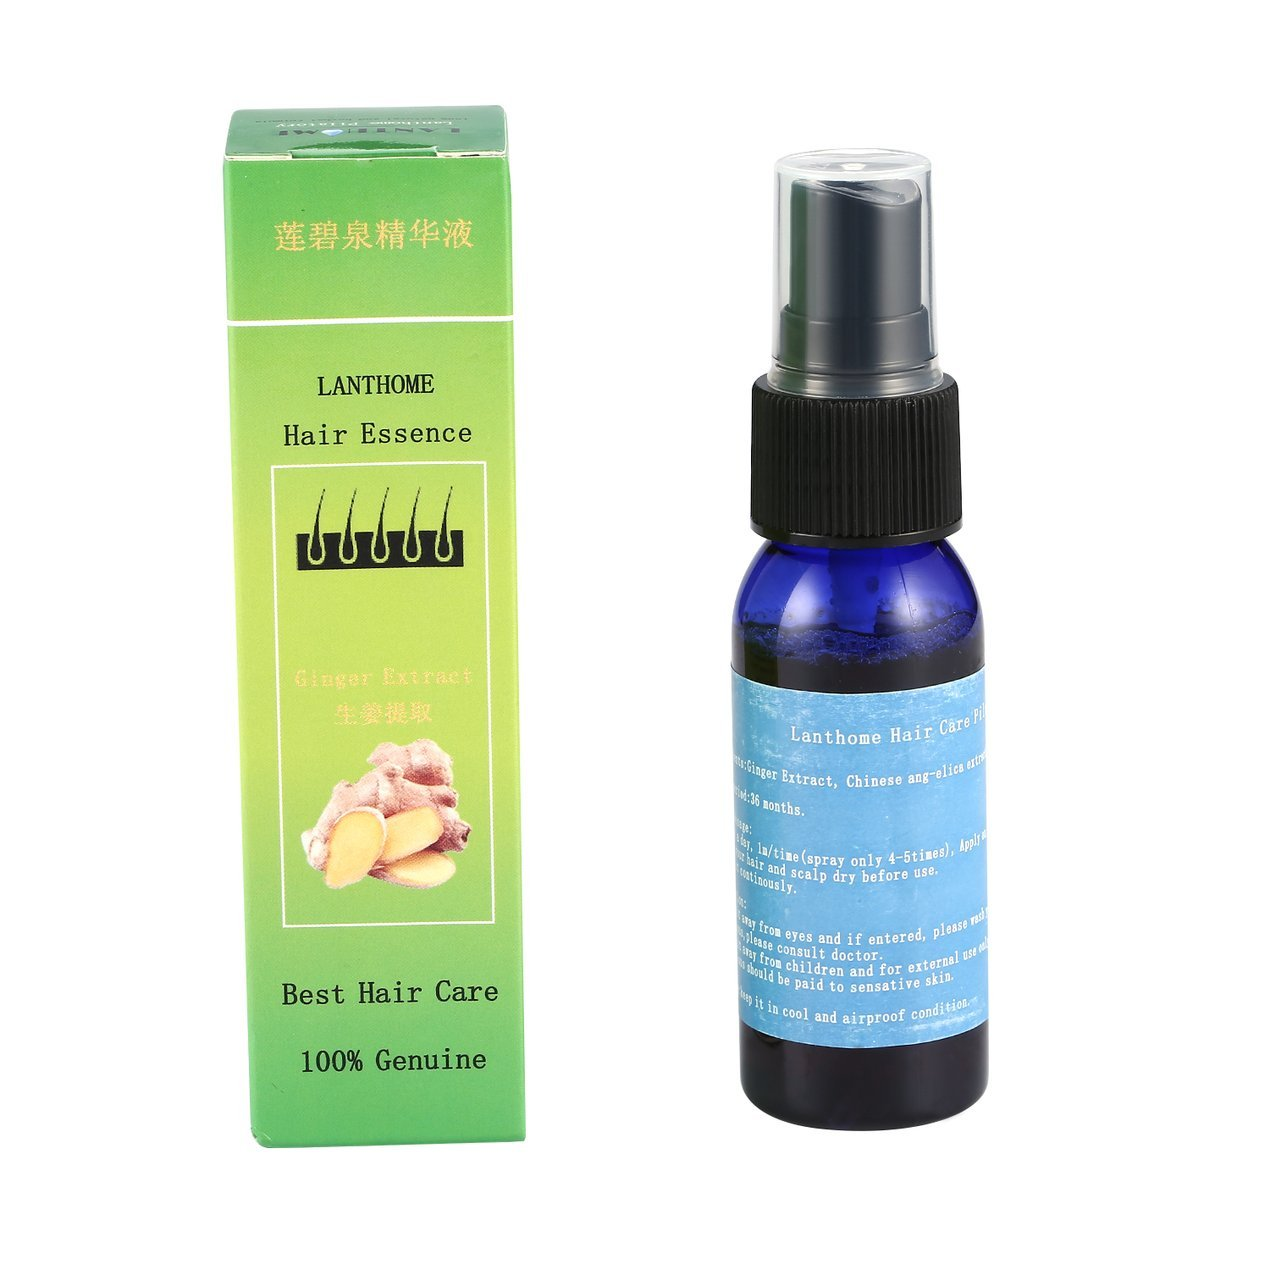 30ML Hair Fast Growth Essence Oil Natural Unisex Anti Hair Loss Hair Growth Liquid Hair Care Oil Treatment Supplies Dooret